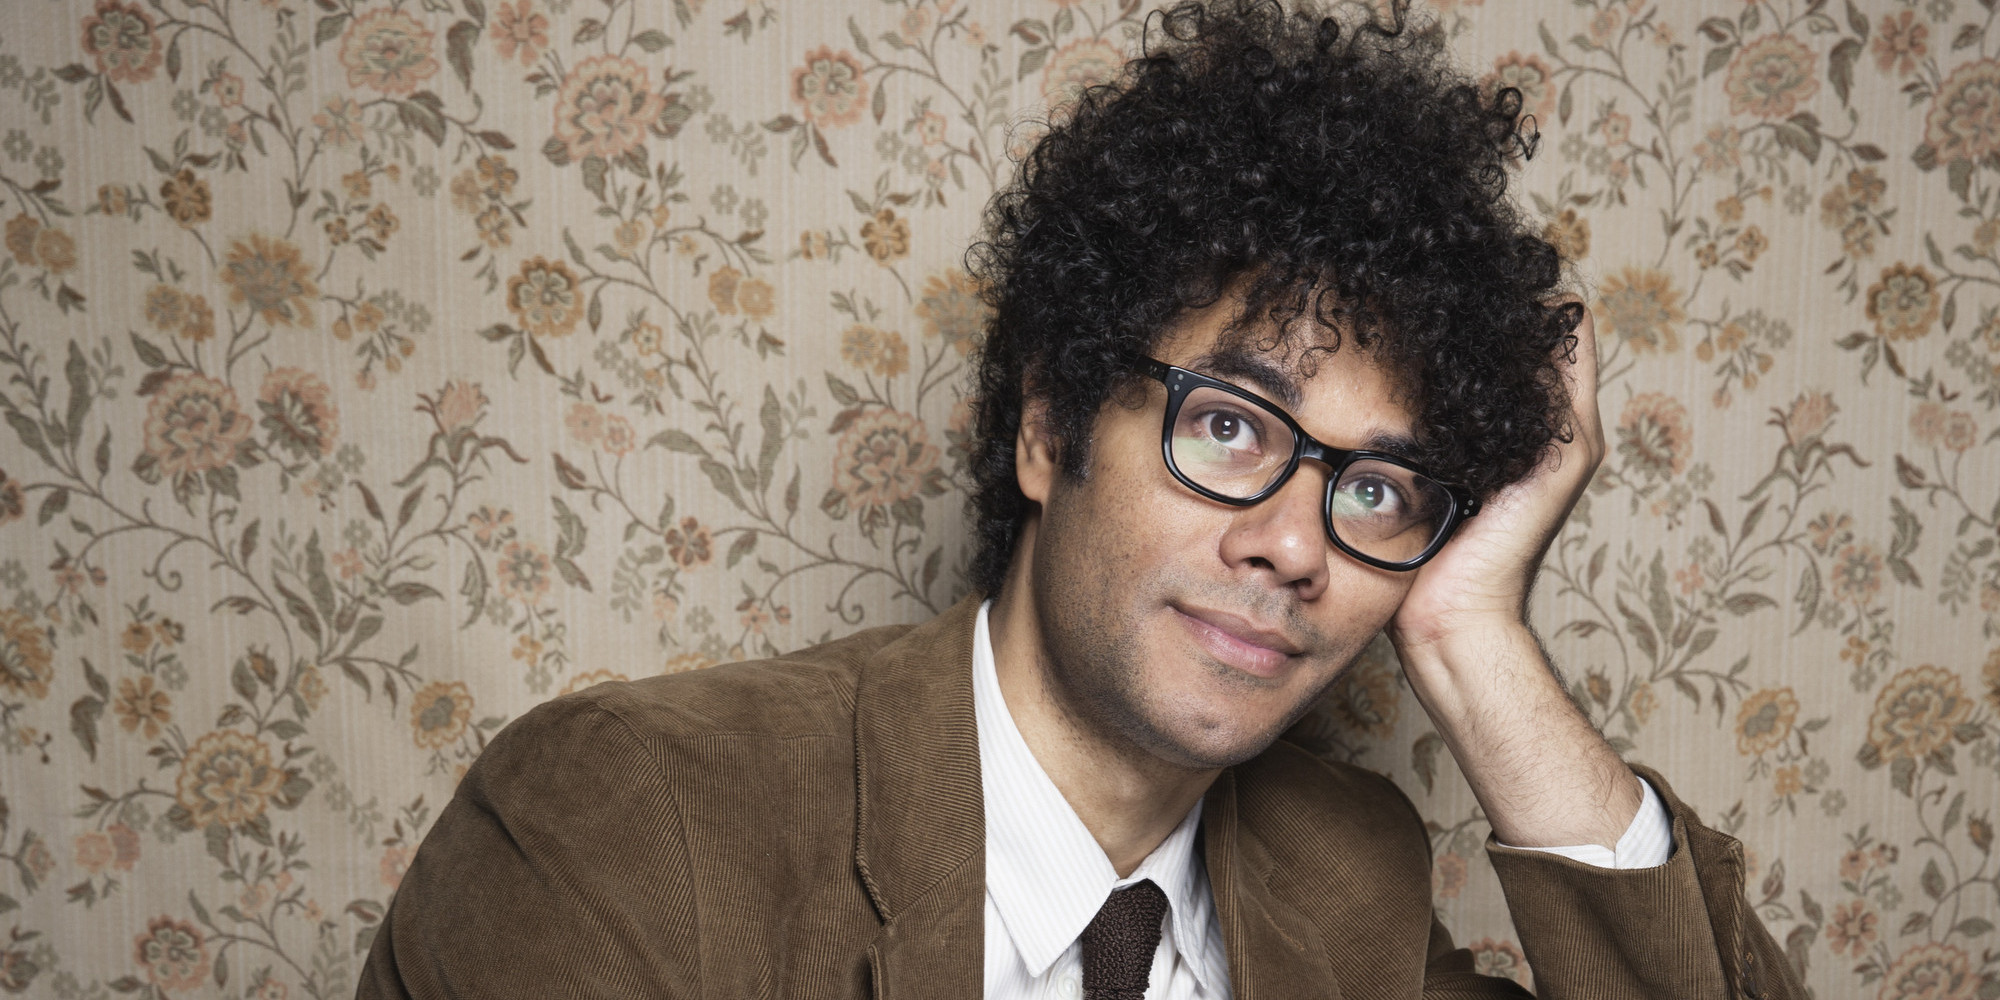 'The Double' Director Richard Ayoade: 'You're Never Going ... Jesse Eisenberg Address